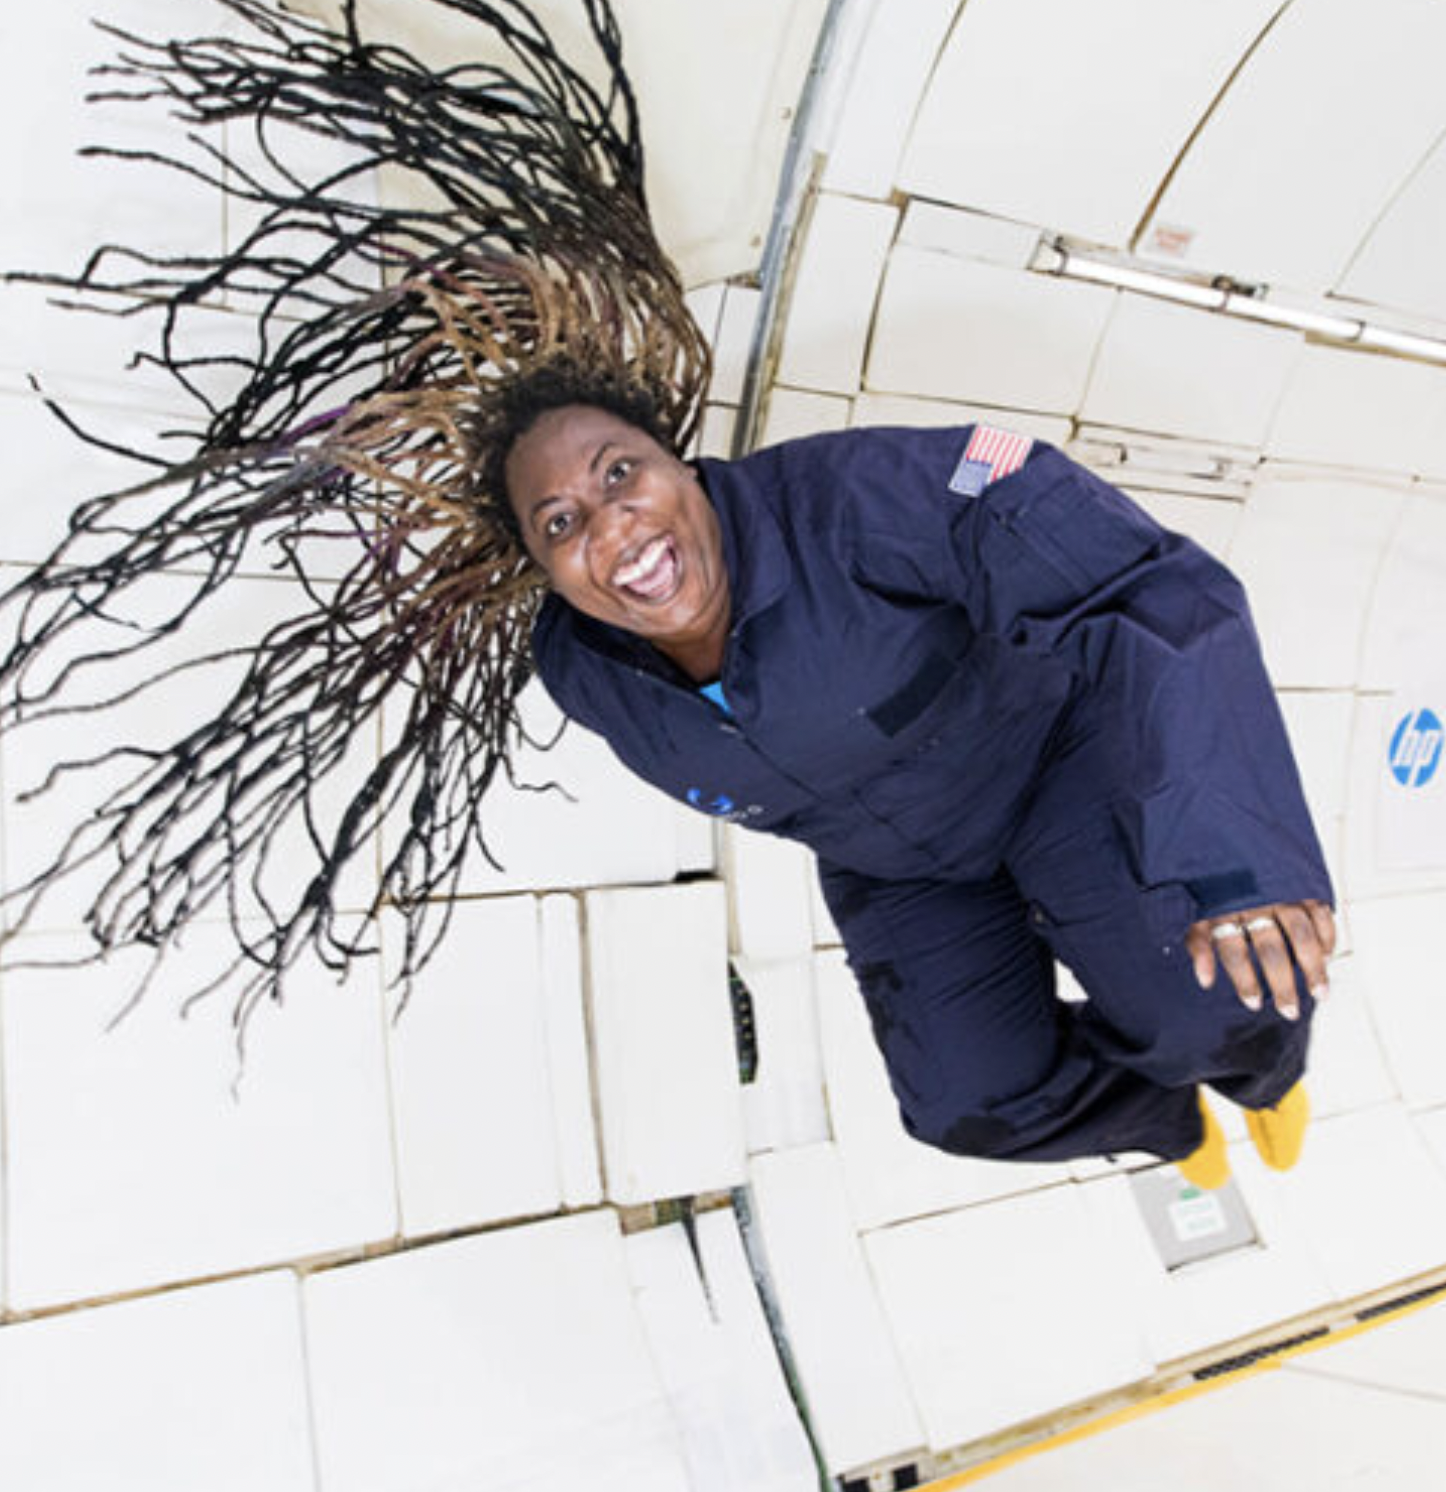 Smiling woman with long hair floating during a ZERO-G flight. Credit: ZERO-G